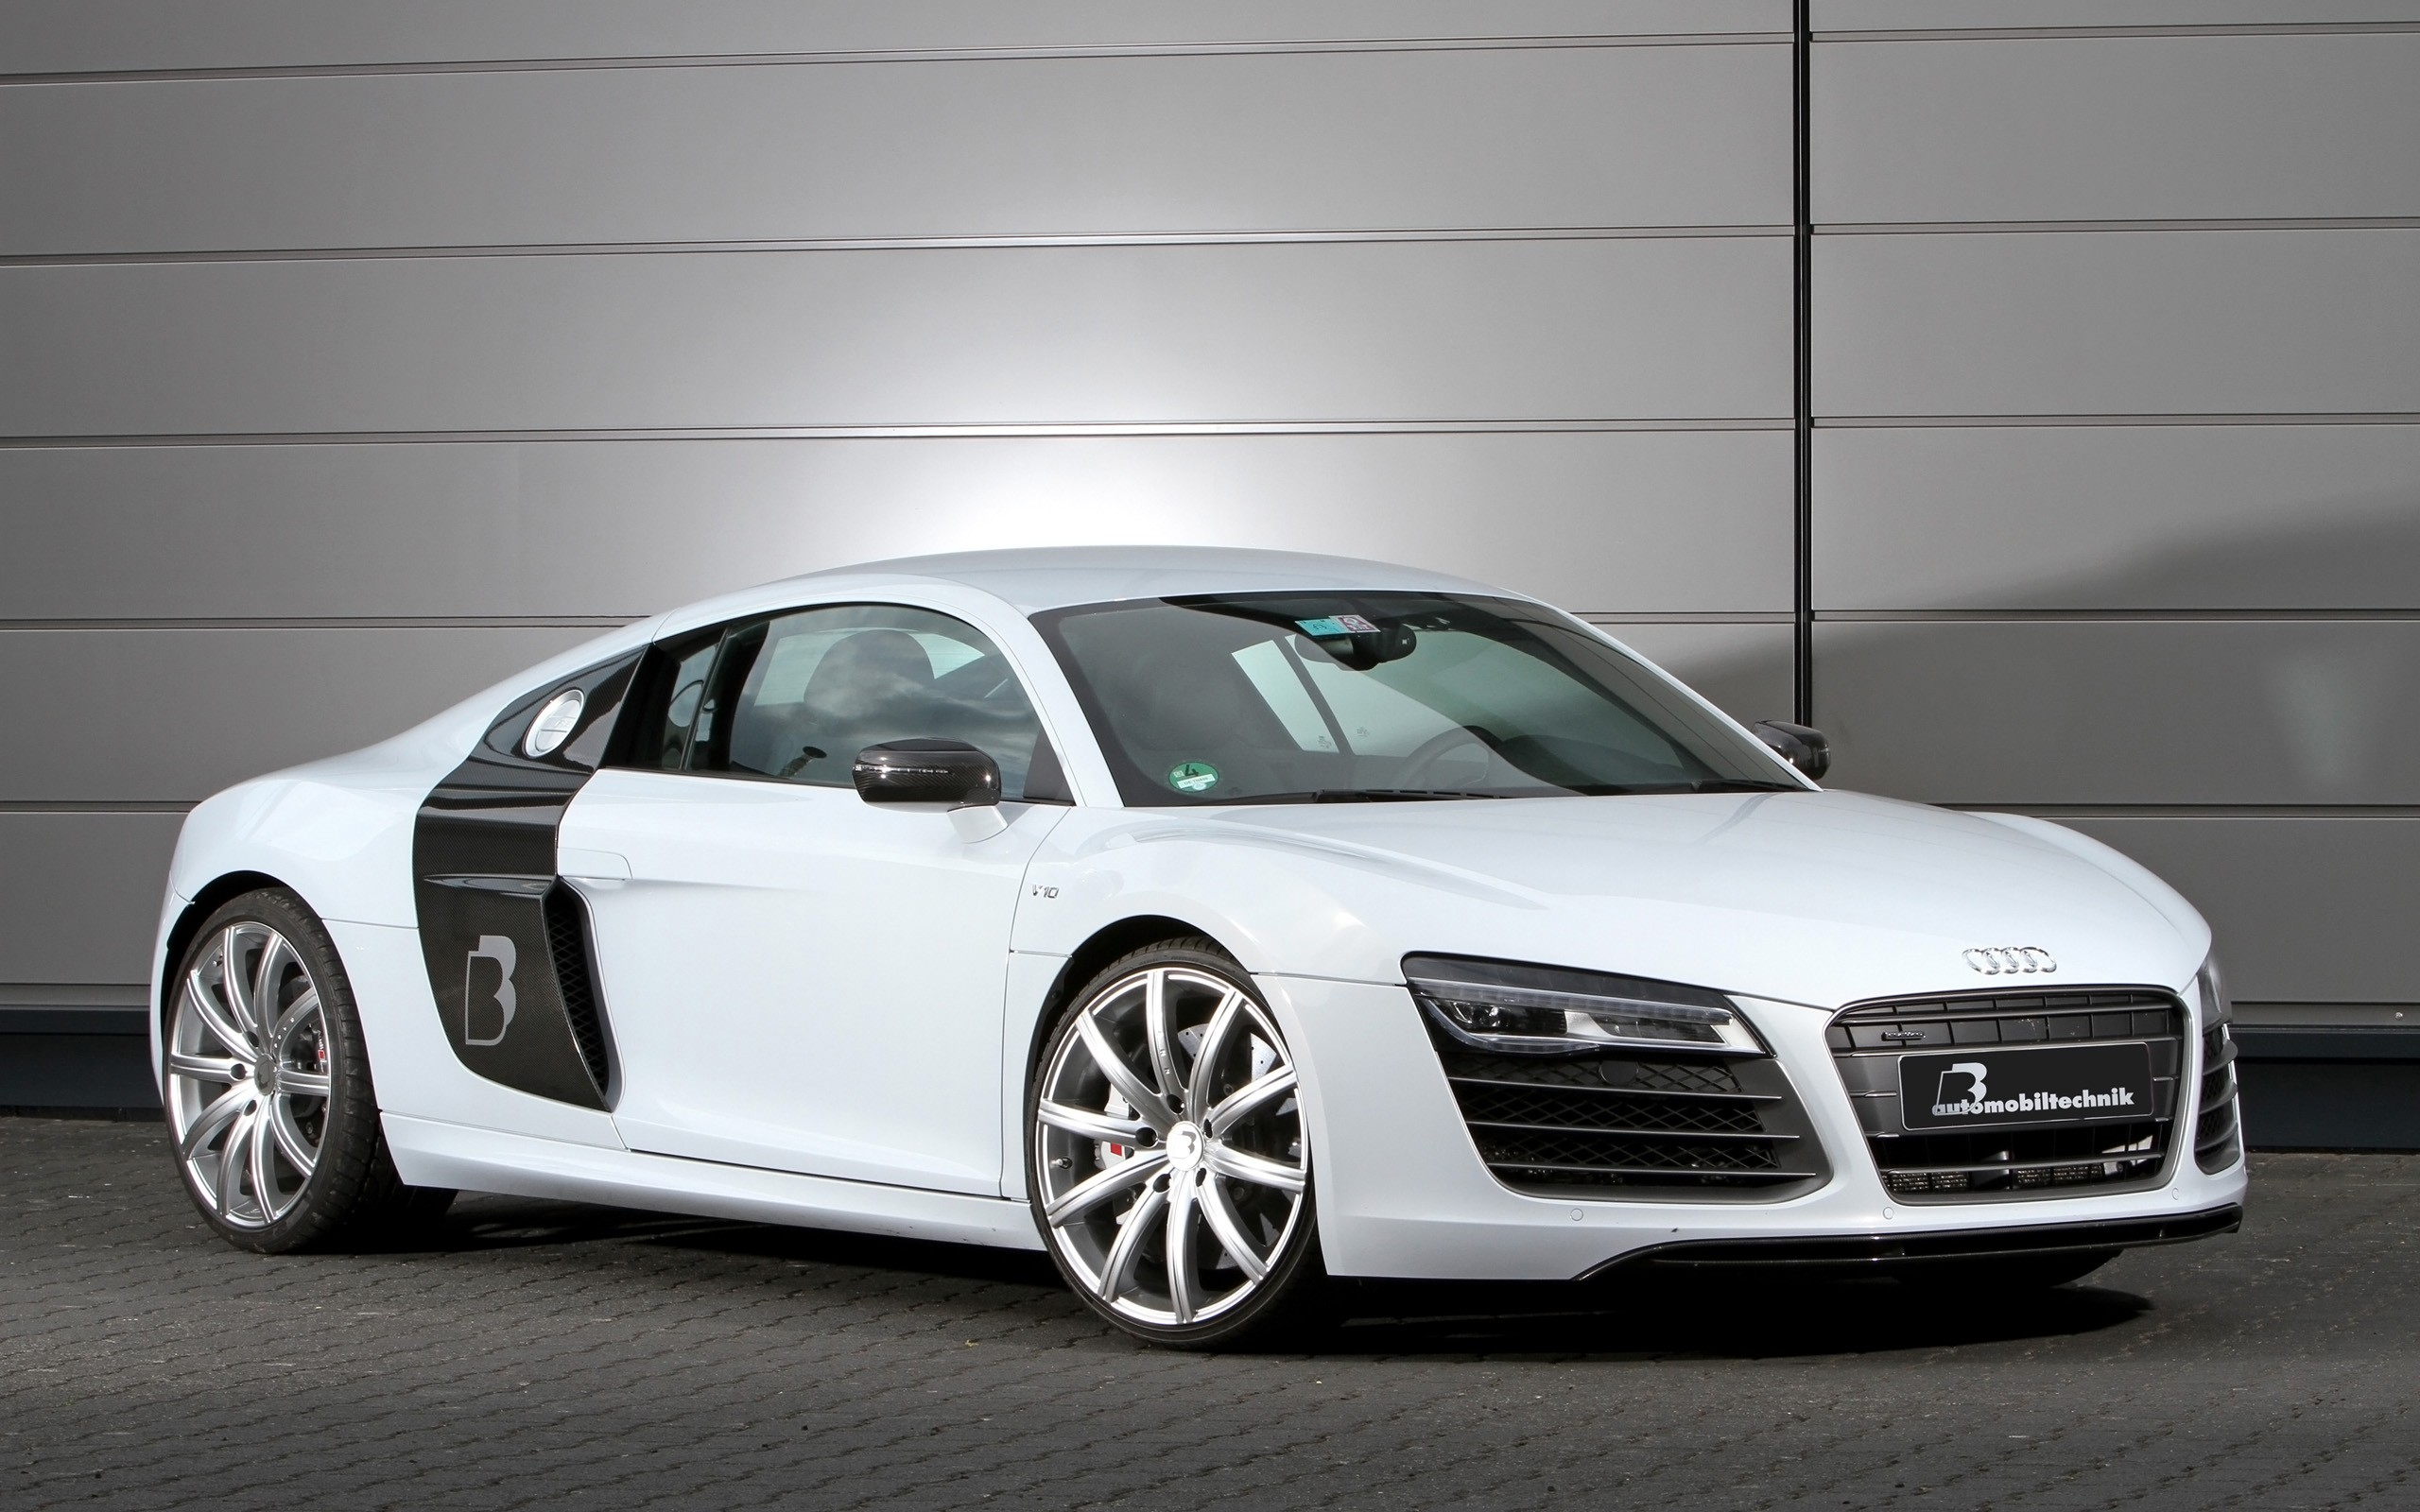 2013 BB Automobiltechnik Audi R8 V10 Plus Wallpaper HD